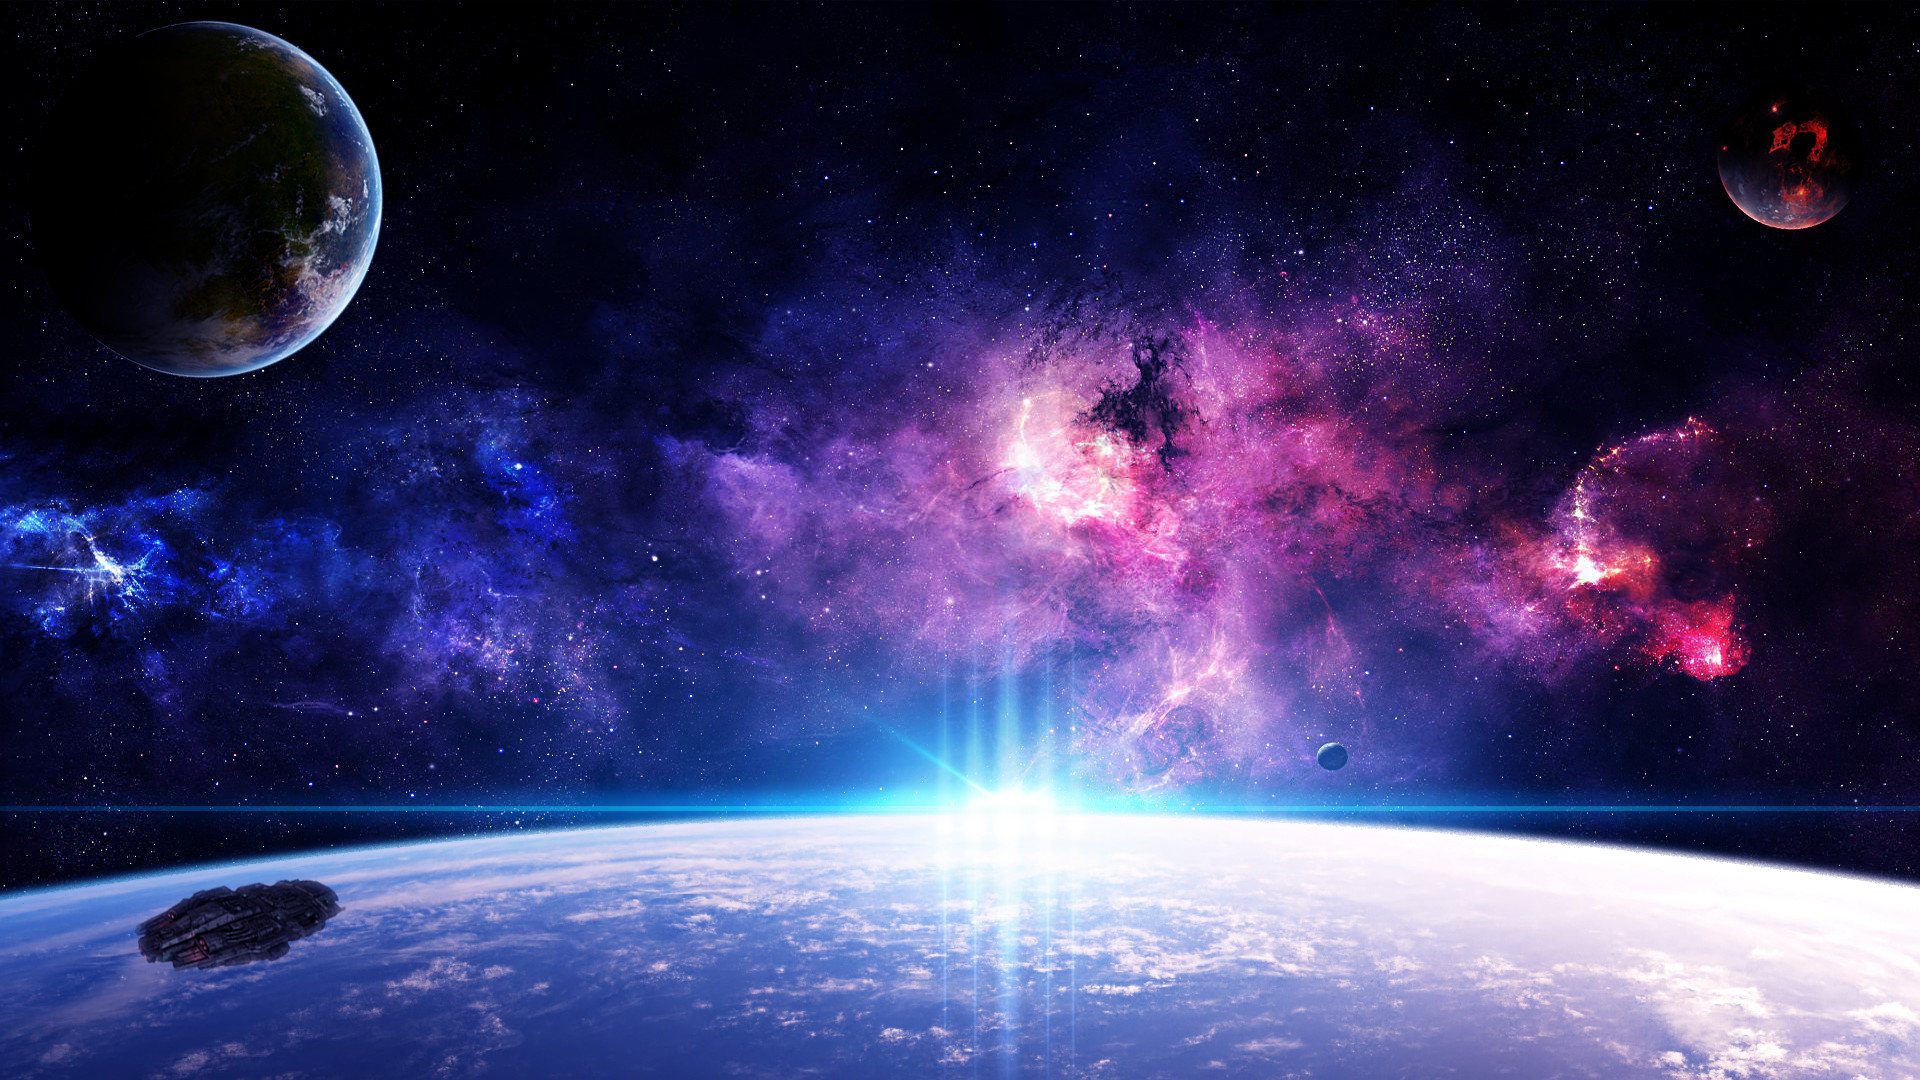 Galaxy Space Live Wallpapers Hd By Narendra Doriya: Live Galaxy Wallpaper For PC (45+ Images